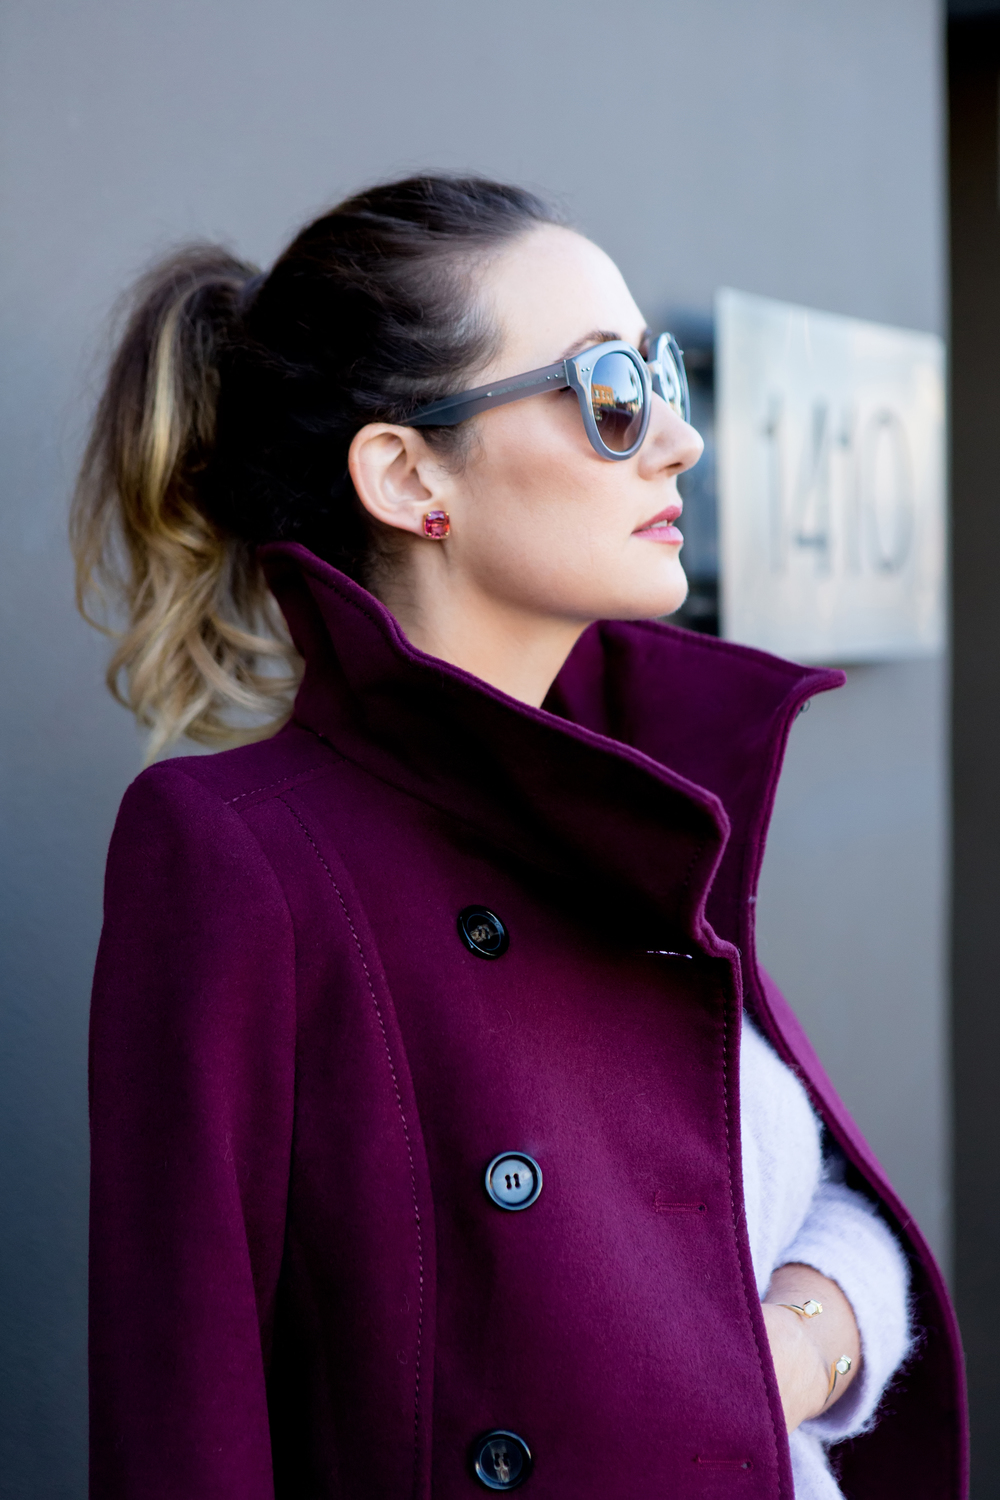 Coat, H and M. Sunglasses, Linda Farrow Luxe. Earrings Kate Spade NY. Chrysalis Cuff, House of Harlow 1960